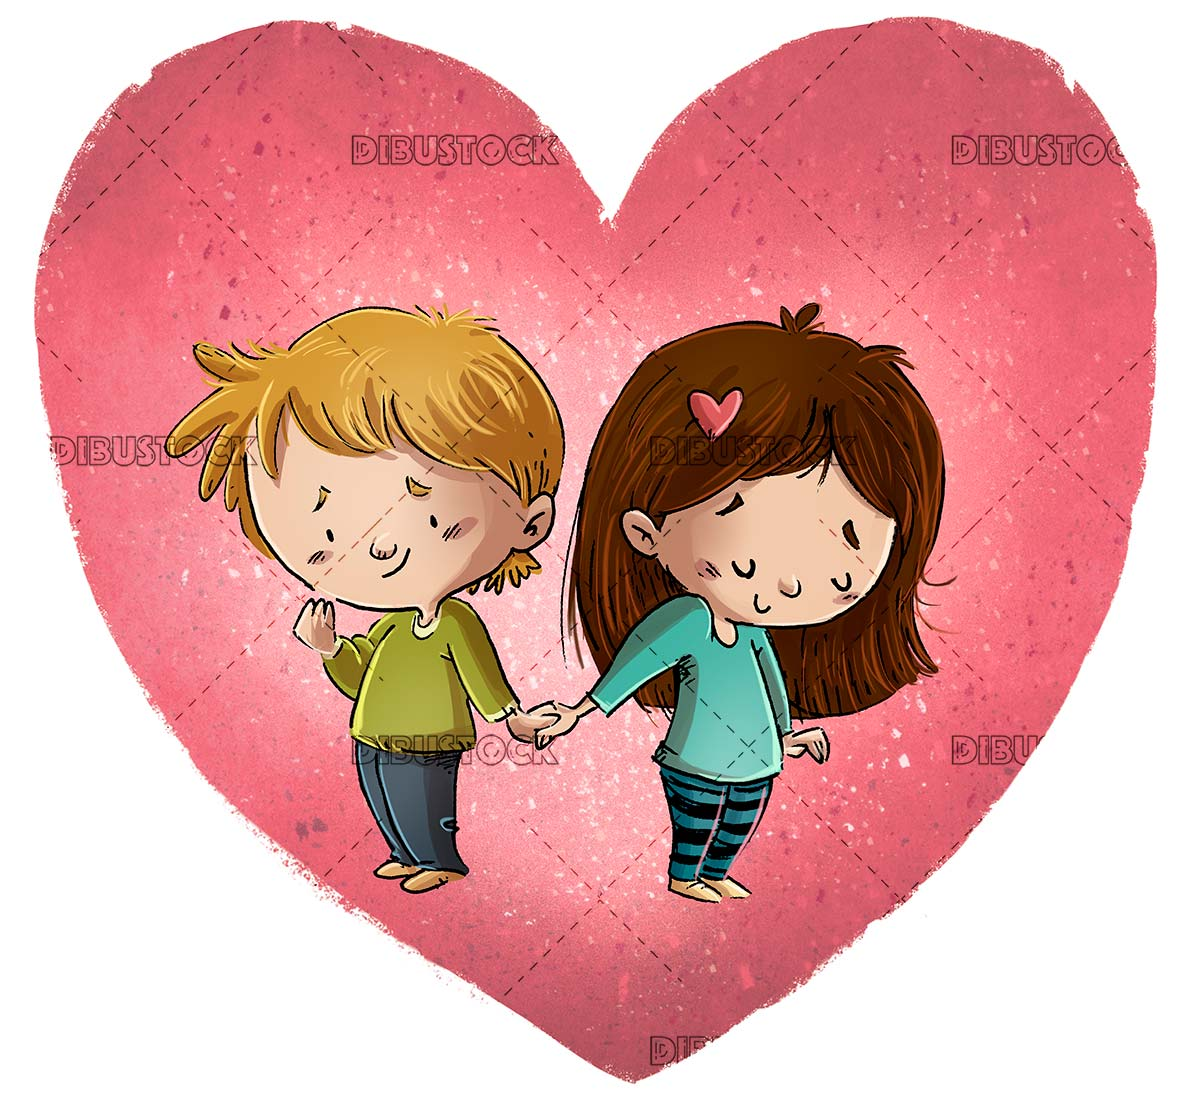 Children in love holding hands with giant heart in the background